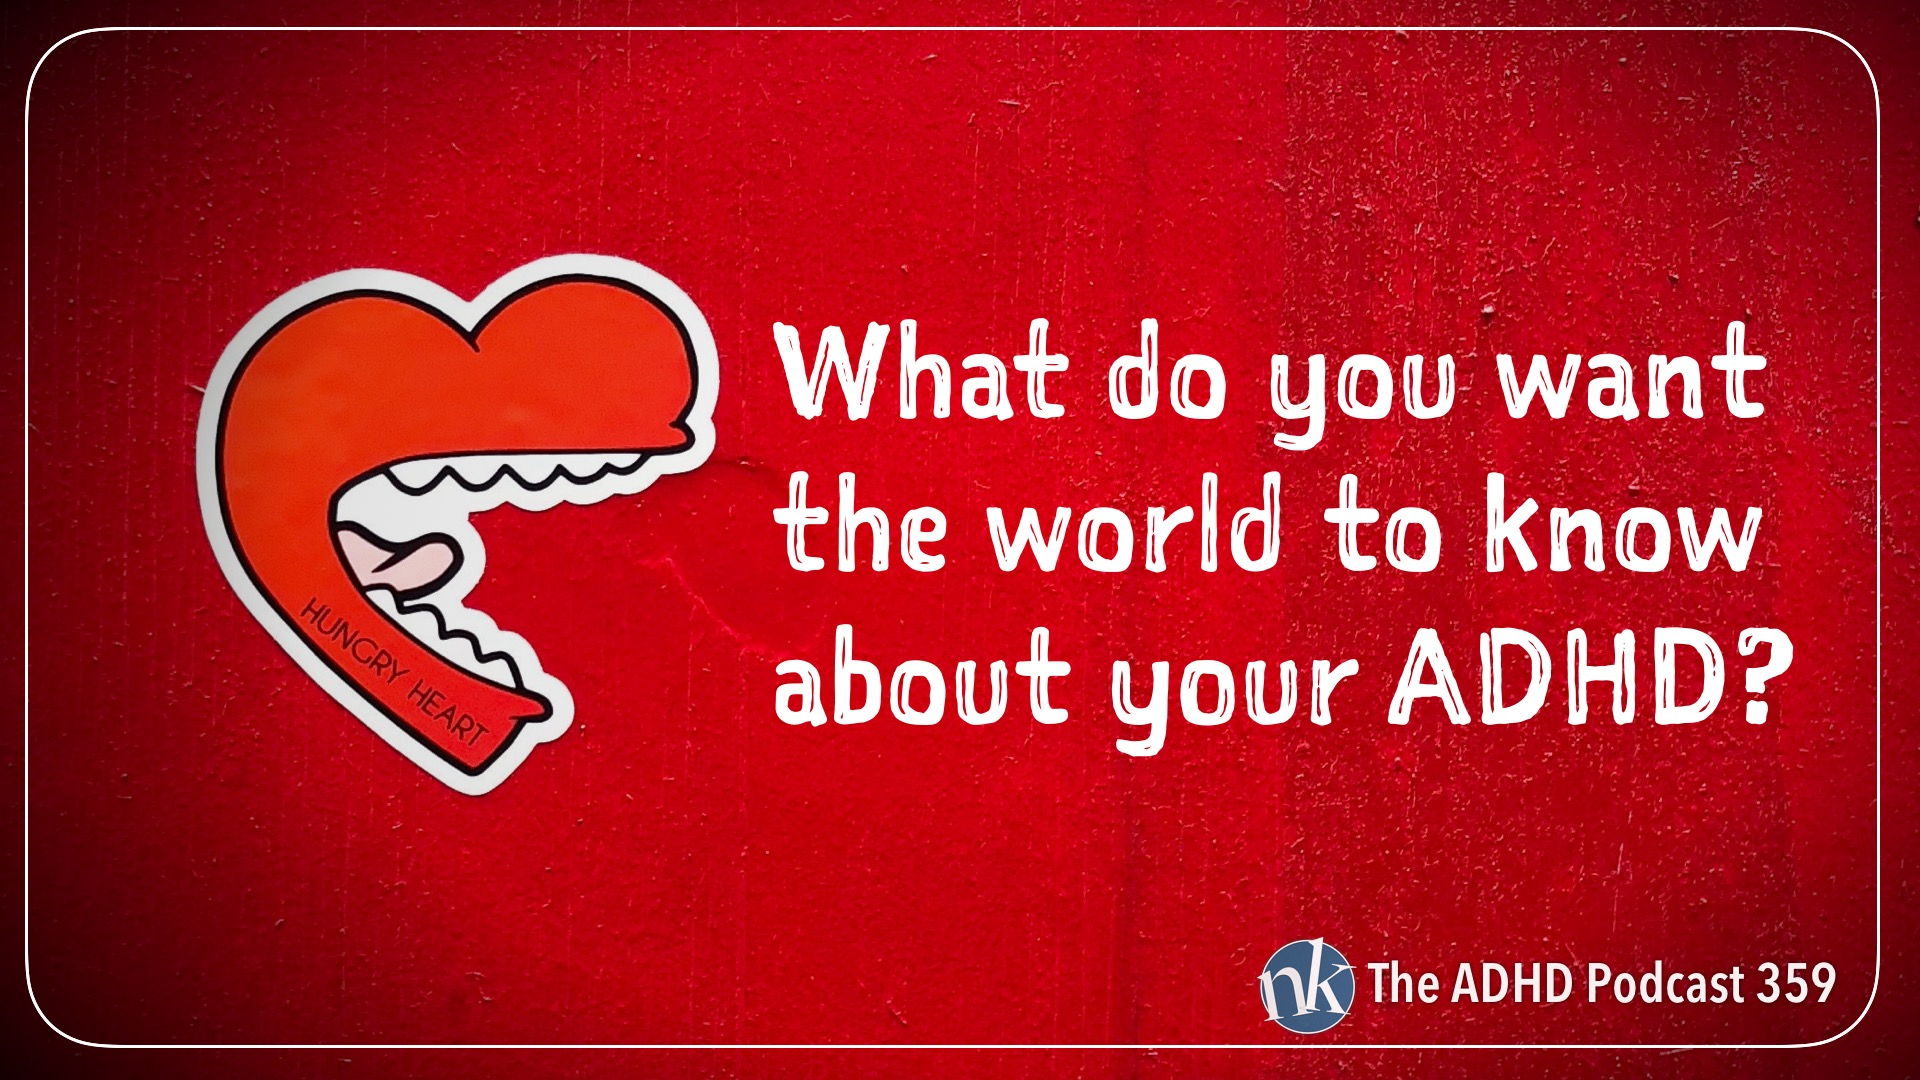 Listen to what you want the world to know about your adhd on Taking Control The ADHD Podcast